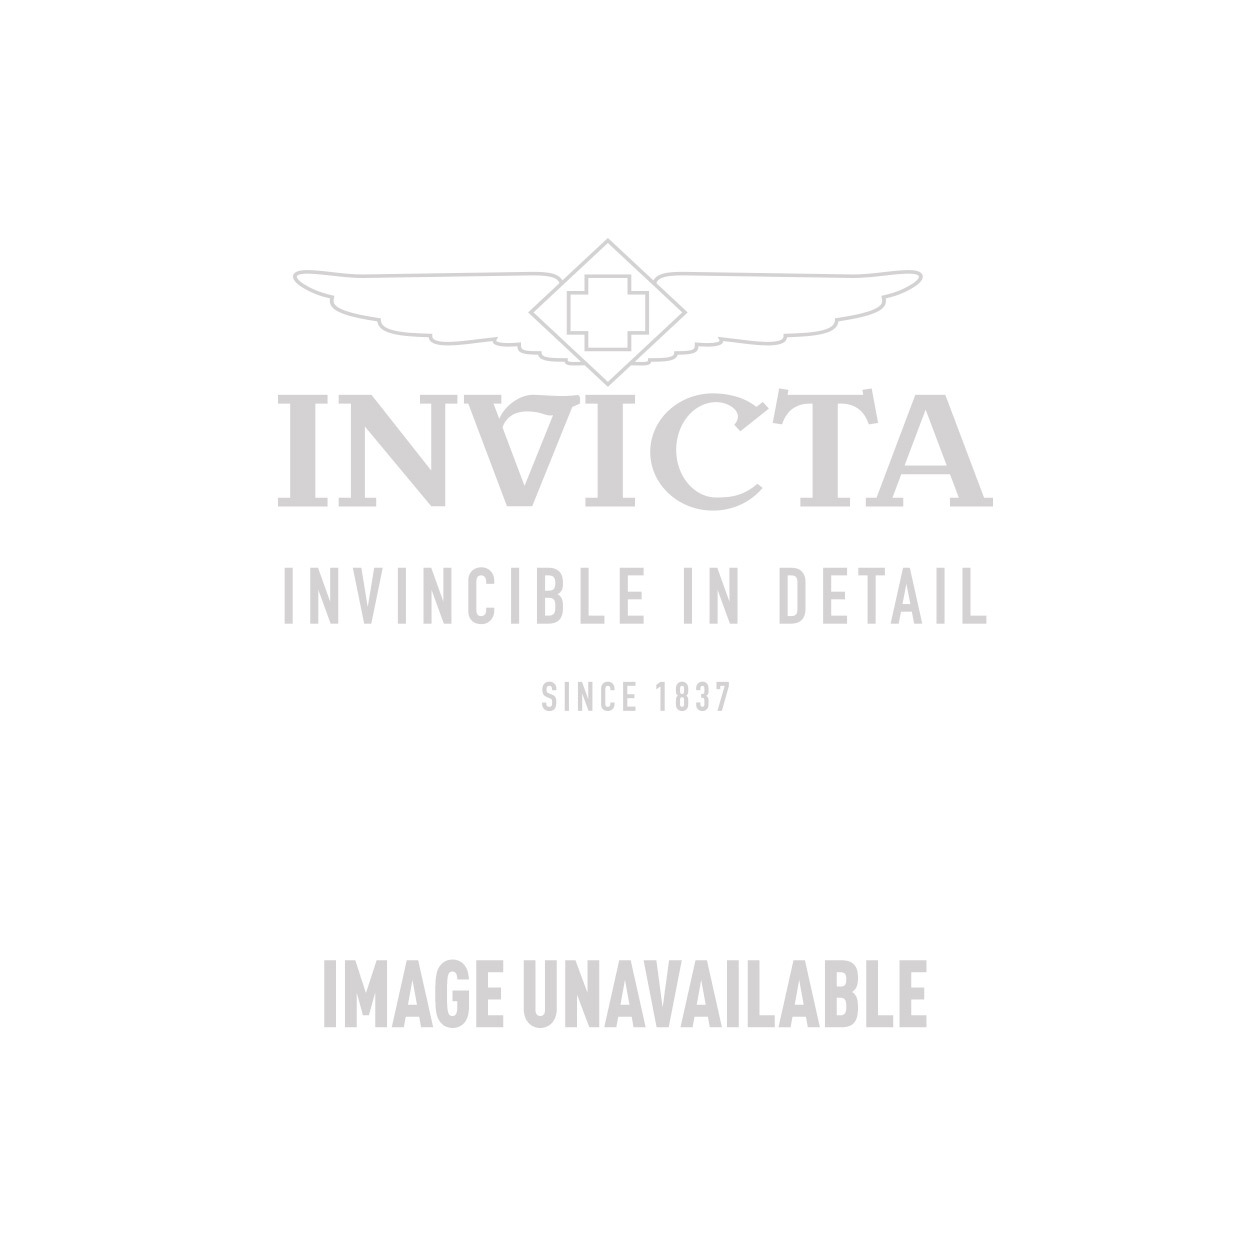 Invicta S1 Rally Quartz Watch - Gold case with Gold, Blue tone Stainless Steel, Silicone band - Model 19330